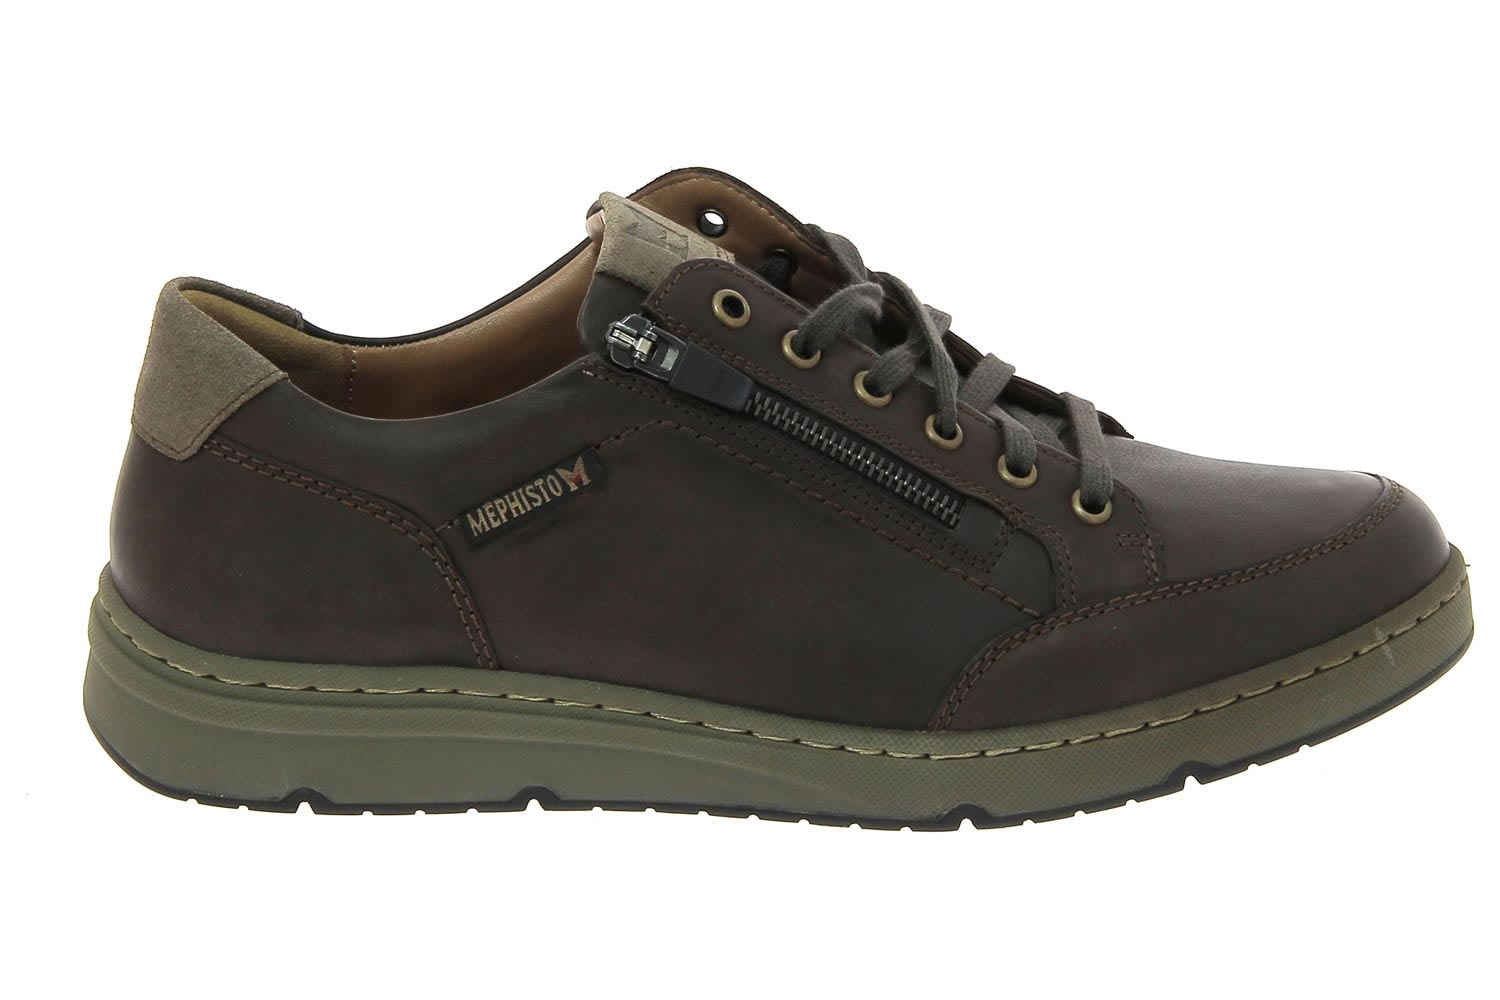 super populaire 78caa 9815e Chaussures homme mephisto marron